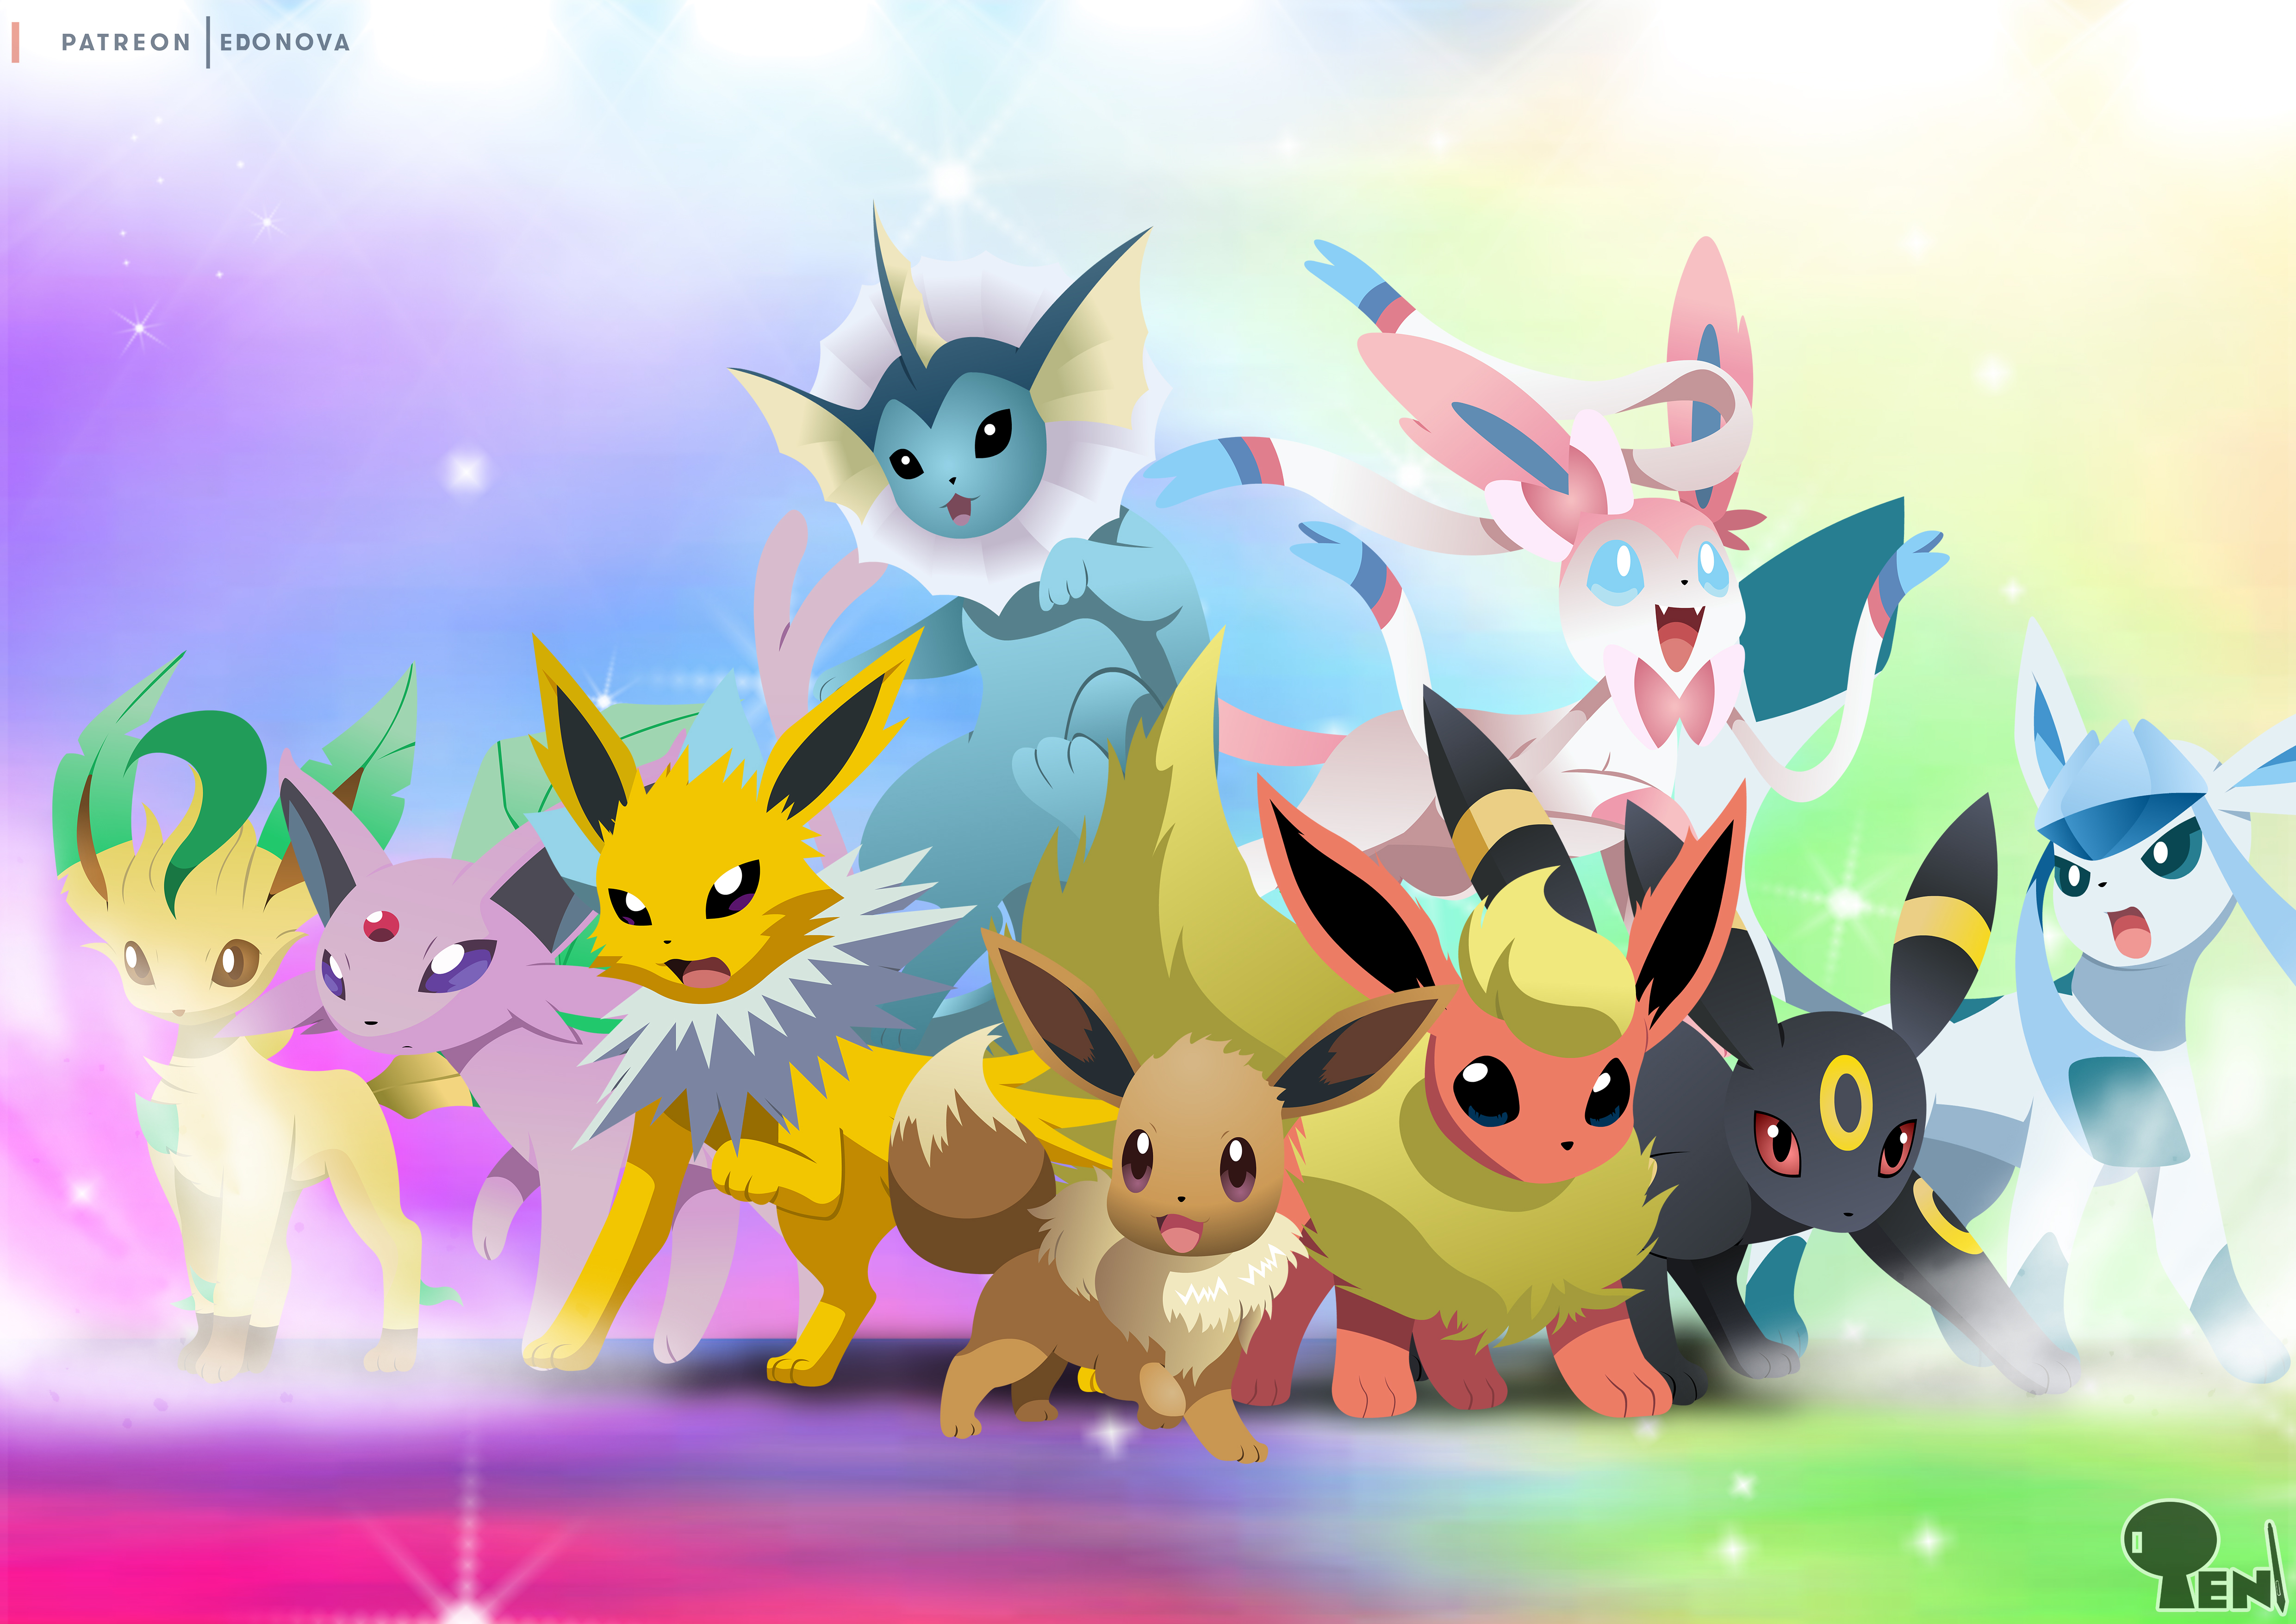 Eevee - The Power Within